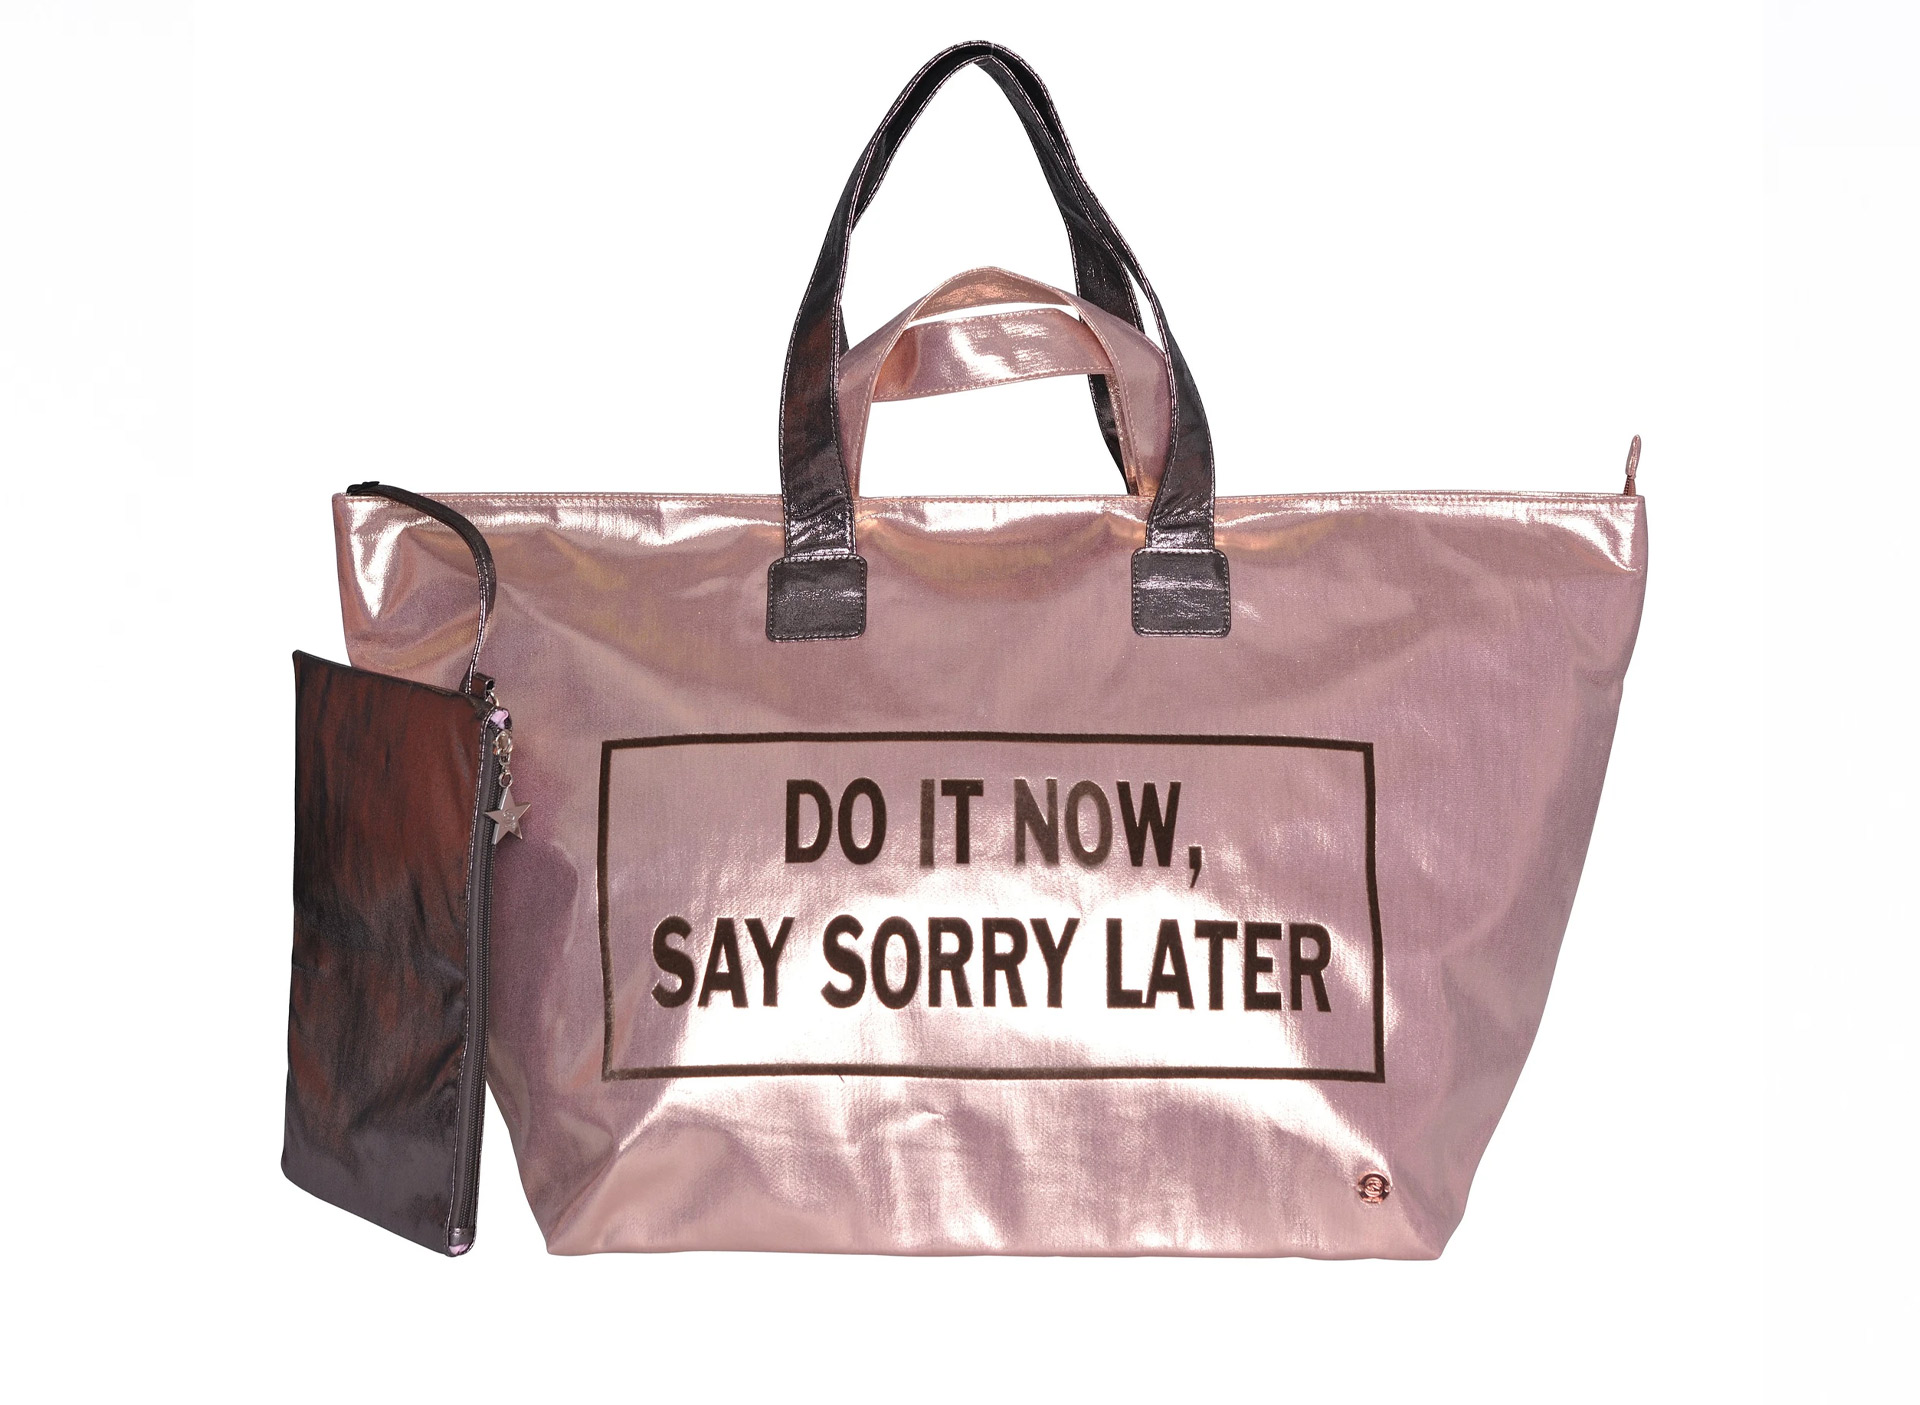 Große Shoppingbag - DO IT NOW, SAY SORRY LATER